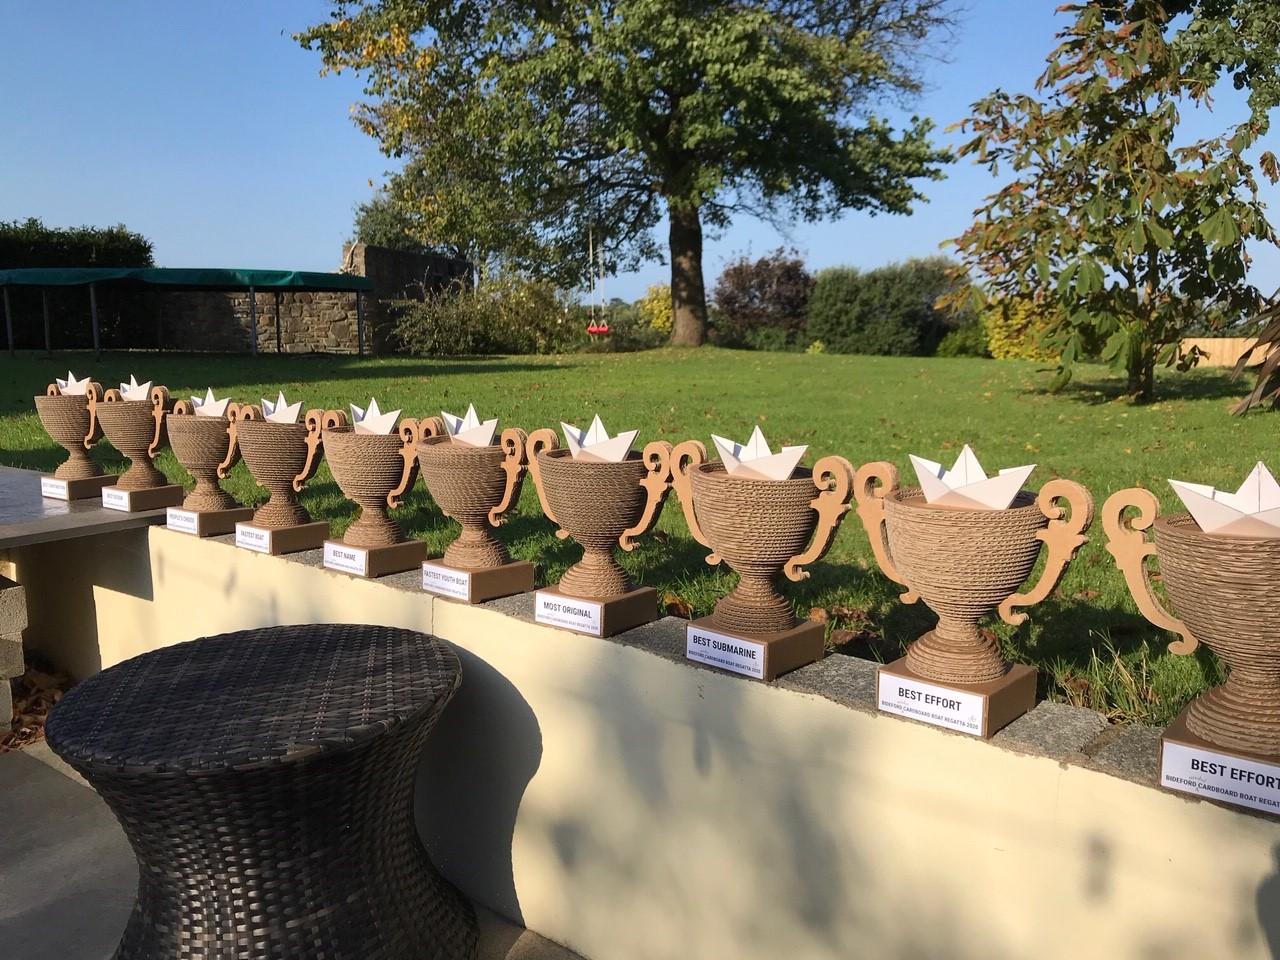 Wonderful trophies for the winners of the 2020 Model Cardboard Boat Race